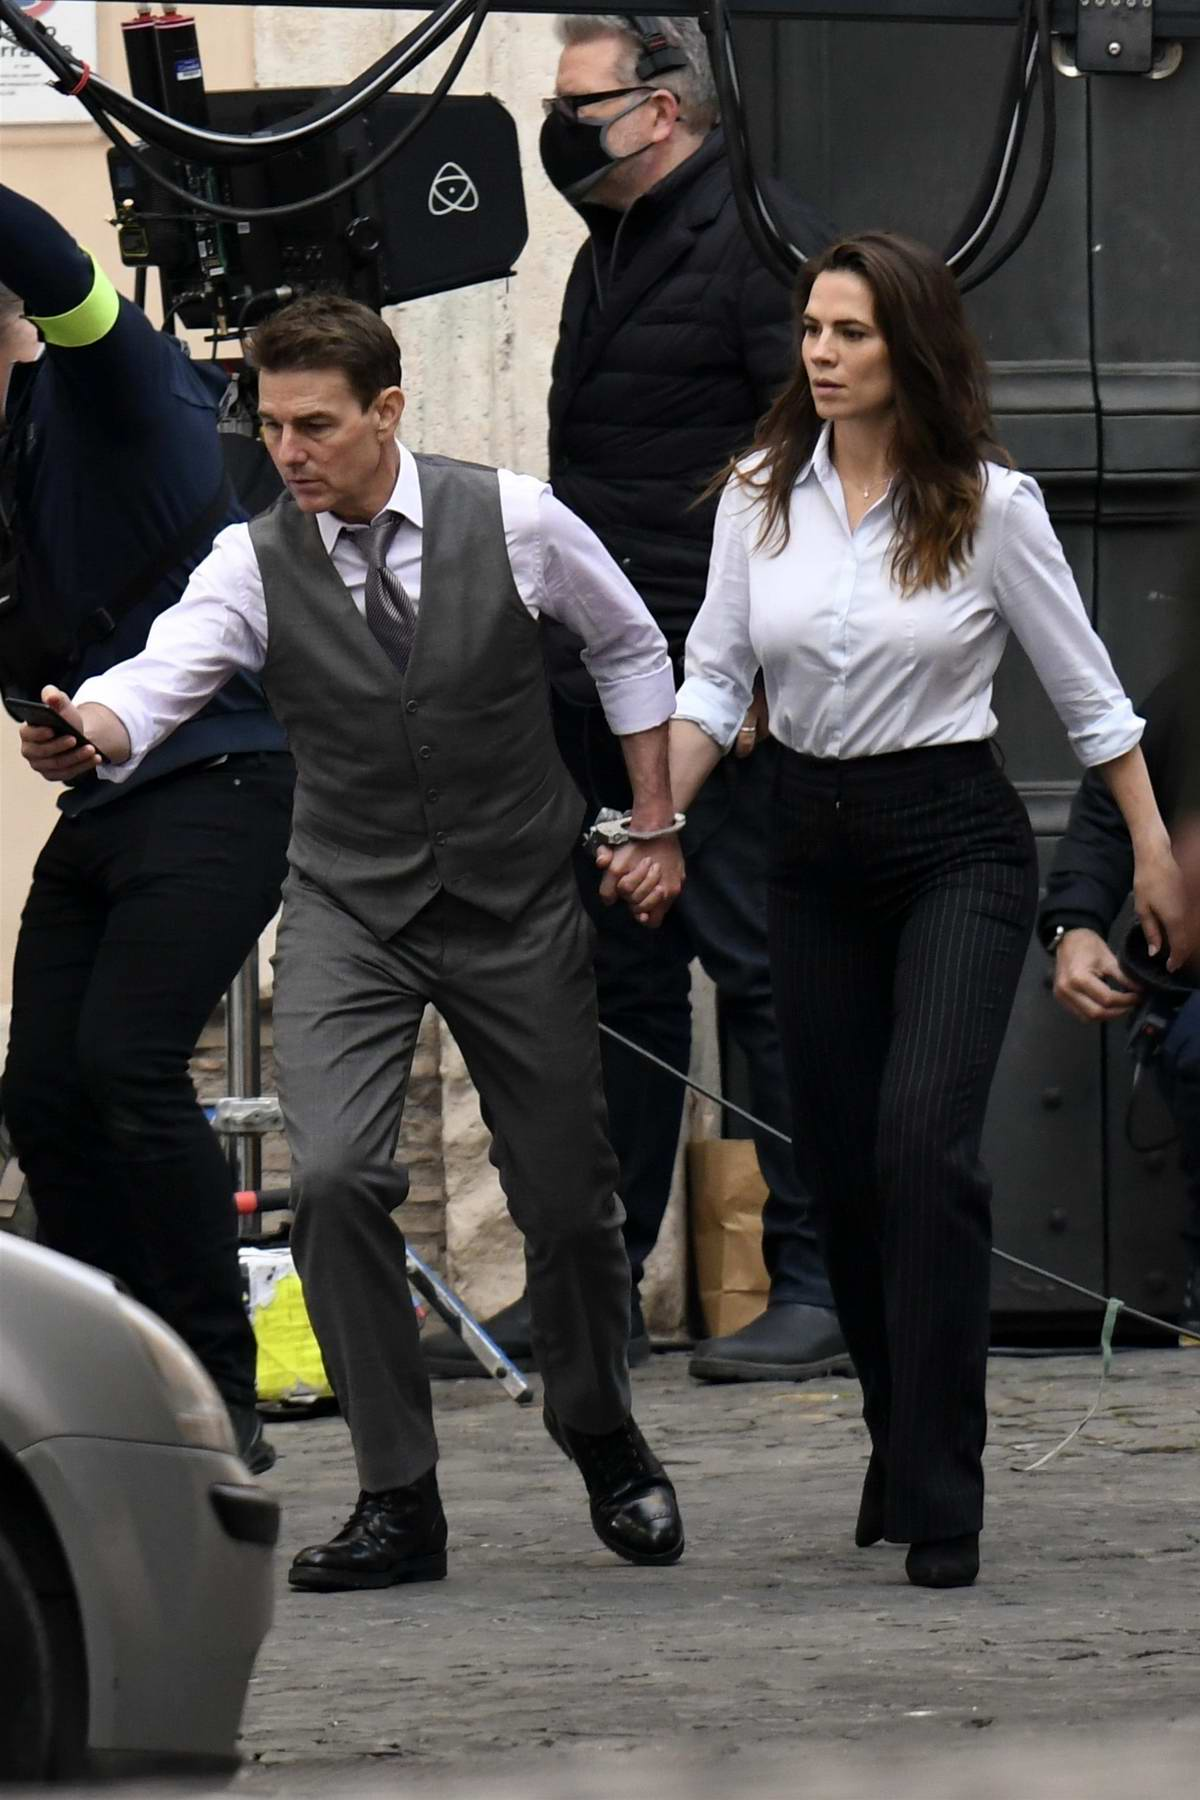 Hayley Atwell and Tom Cruise seen handcuffed to each other while filming 'Mission Impossible 7' in Rome, Italy